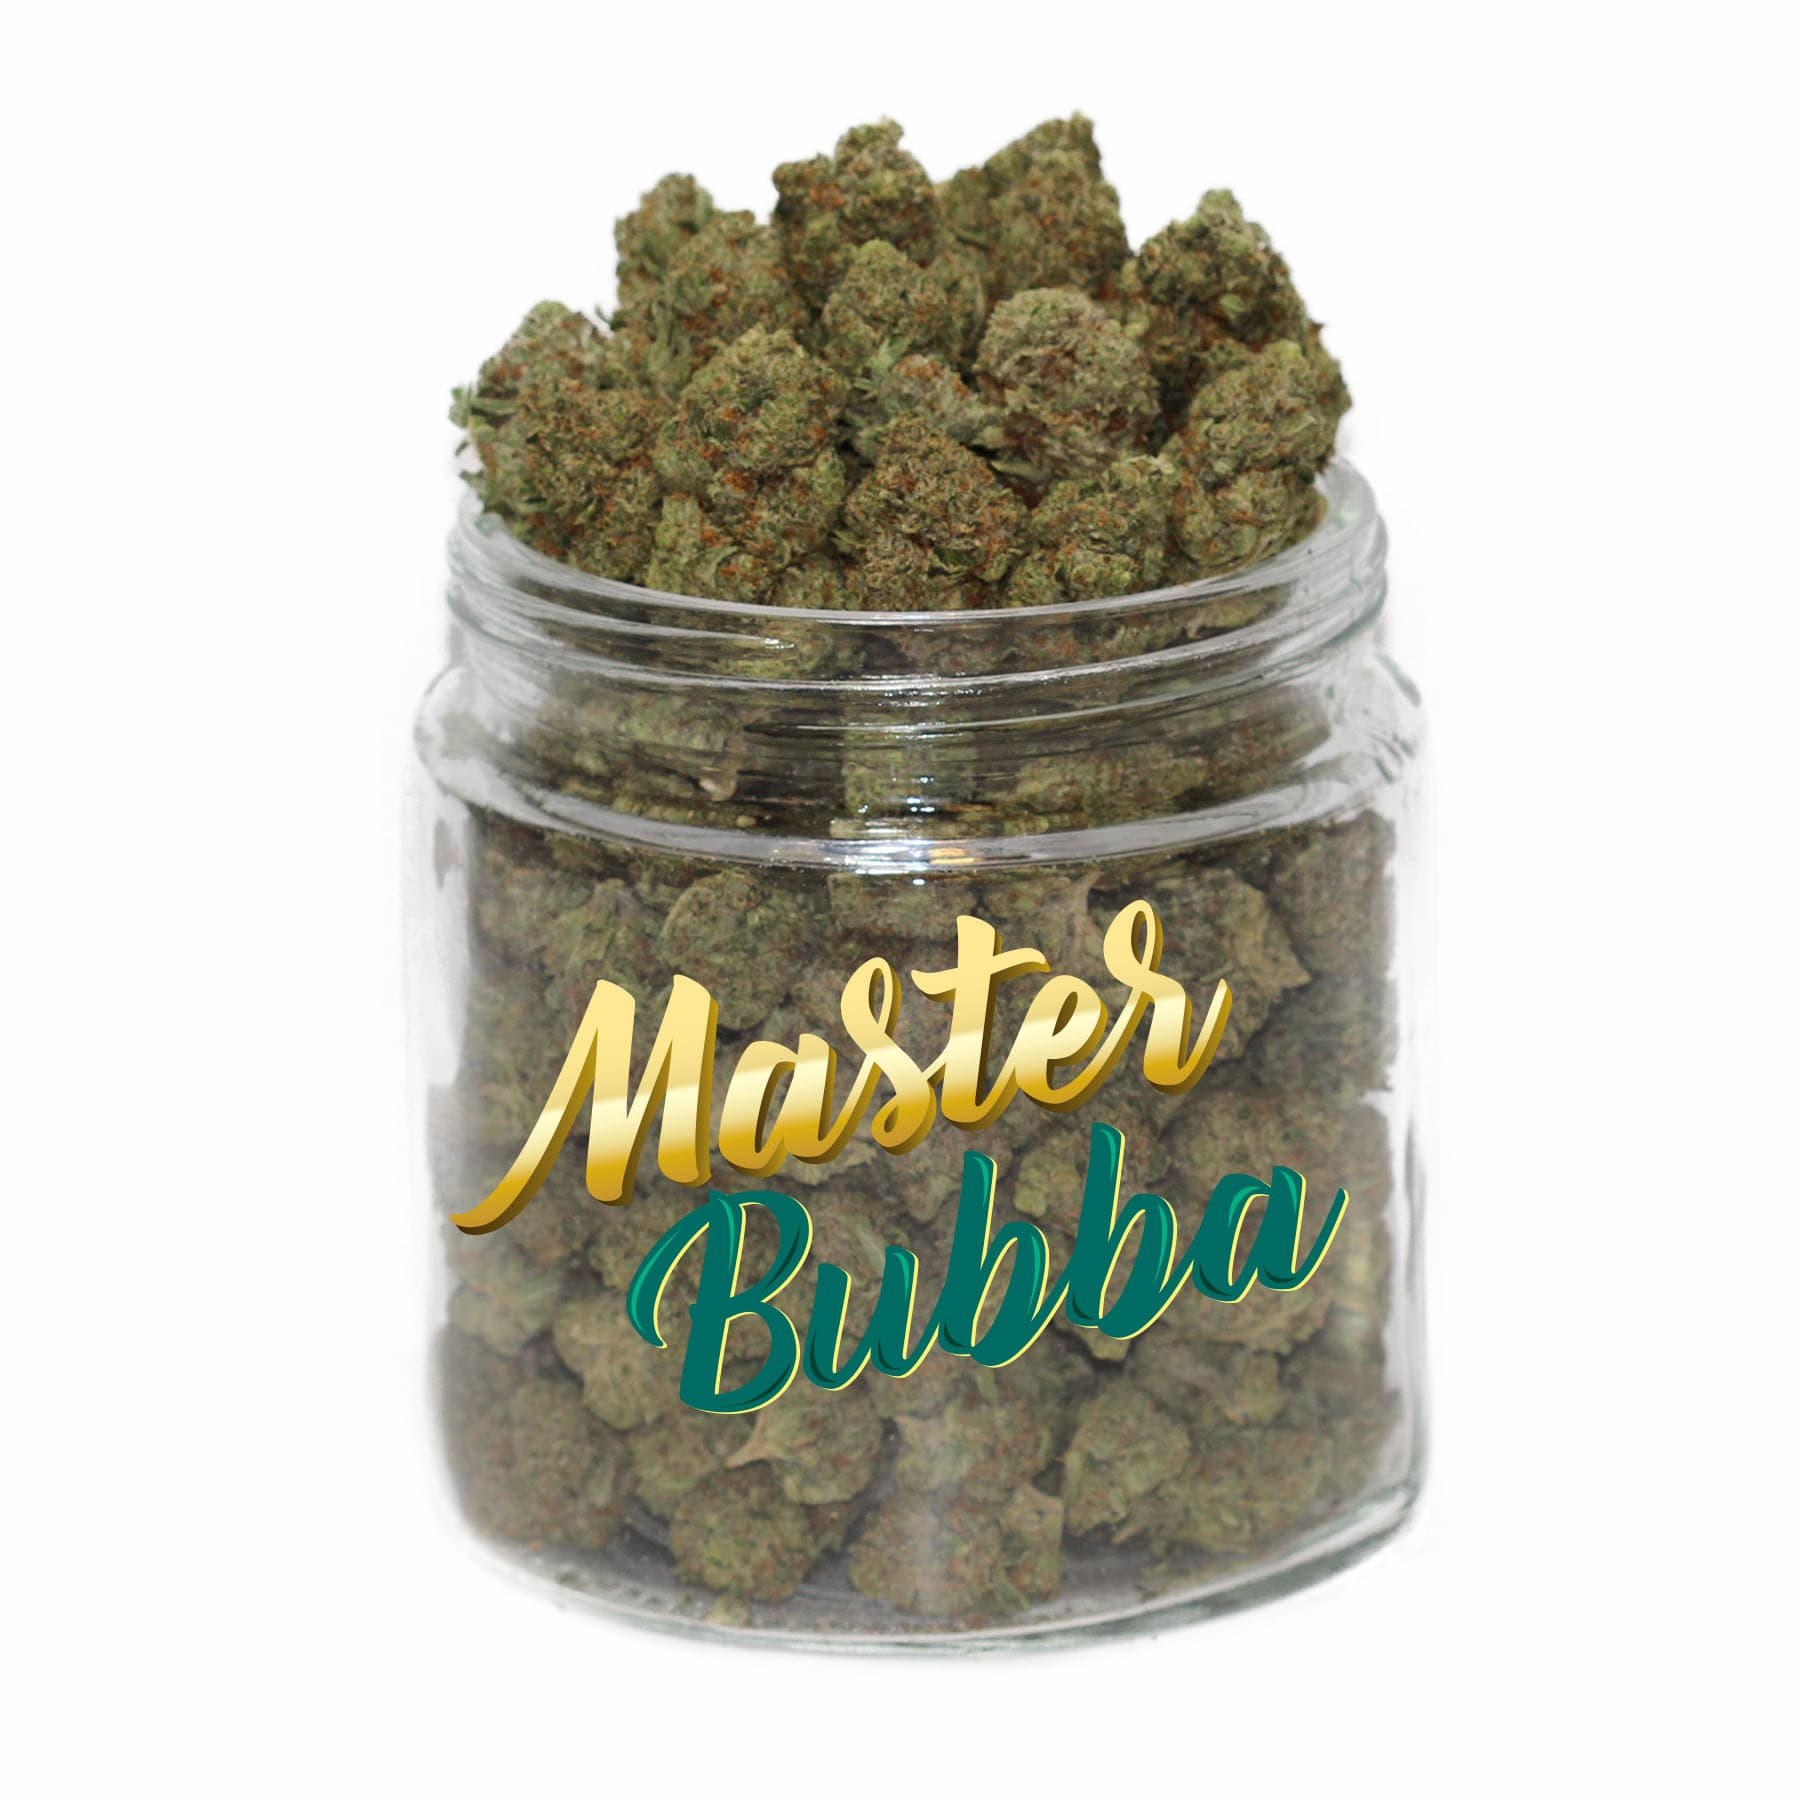 Master Bubba (AAAA) by Get Kush - Image © 2018 Get Kush. All Rights Reserved.